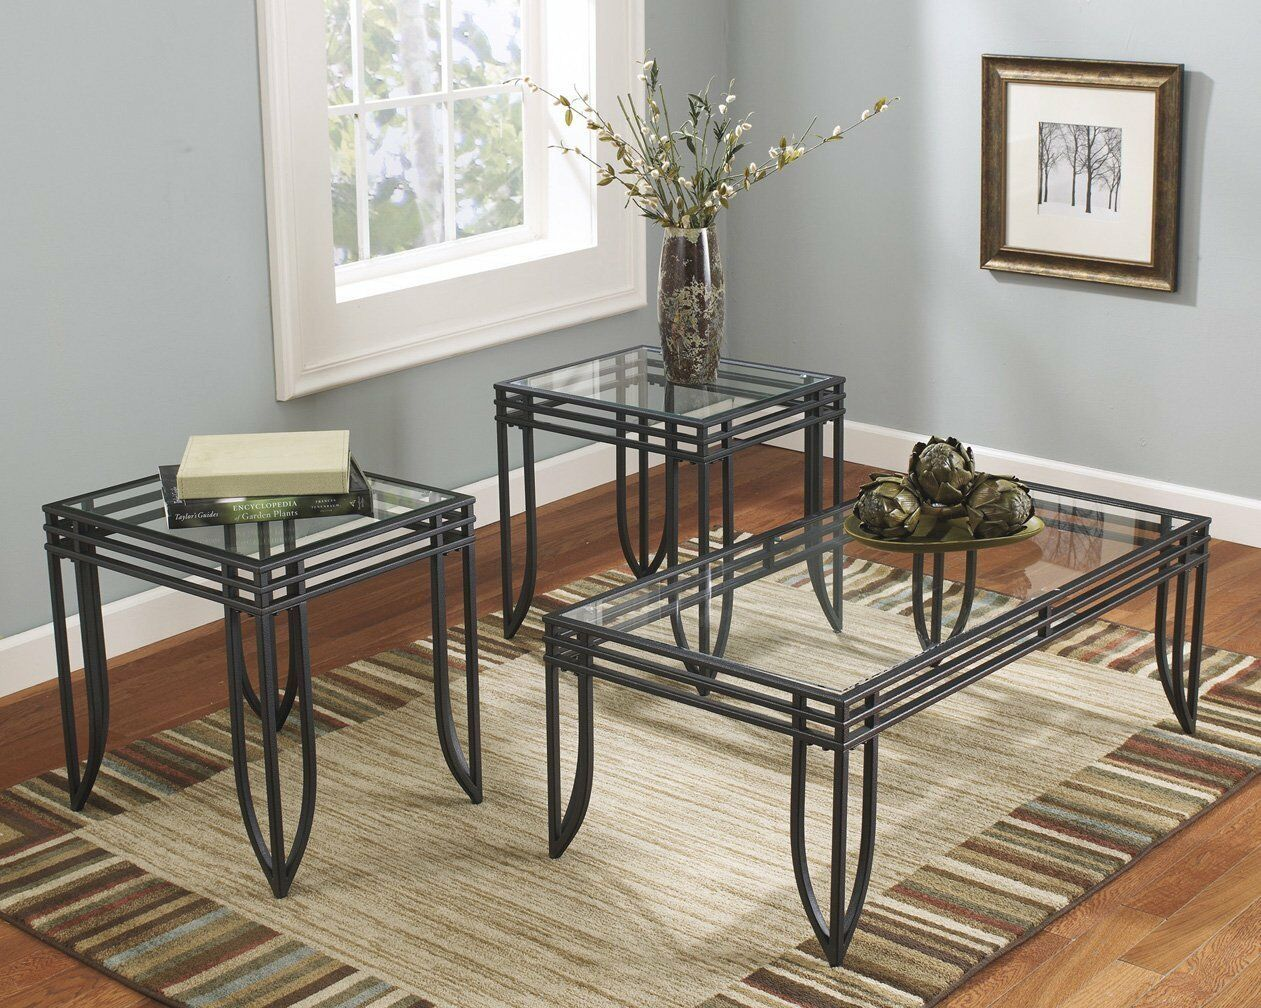 Details about New Glass Top High Gloss Coffee Table & End Table Set 3 Pc  Living Room Furniture